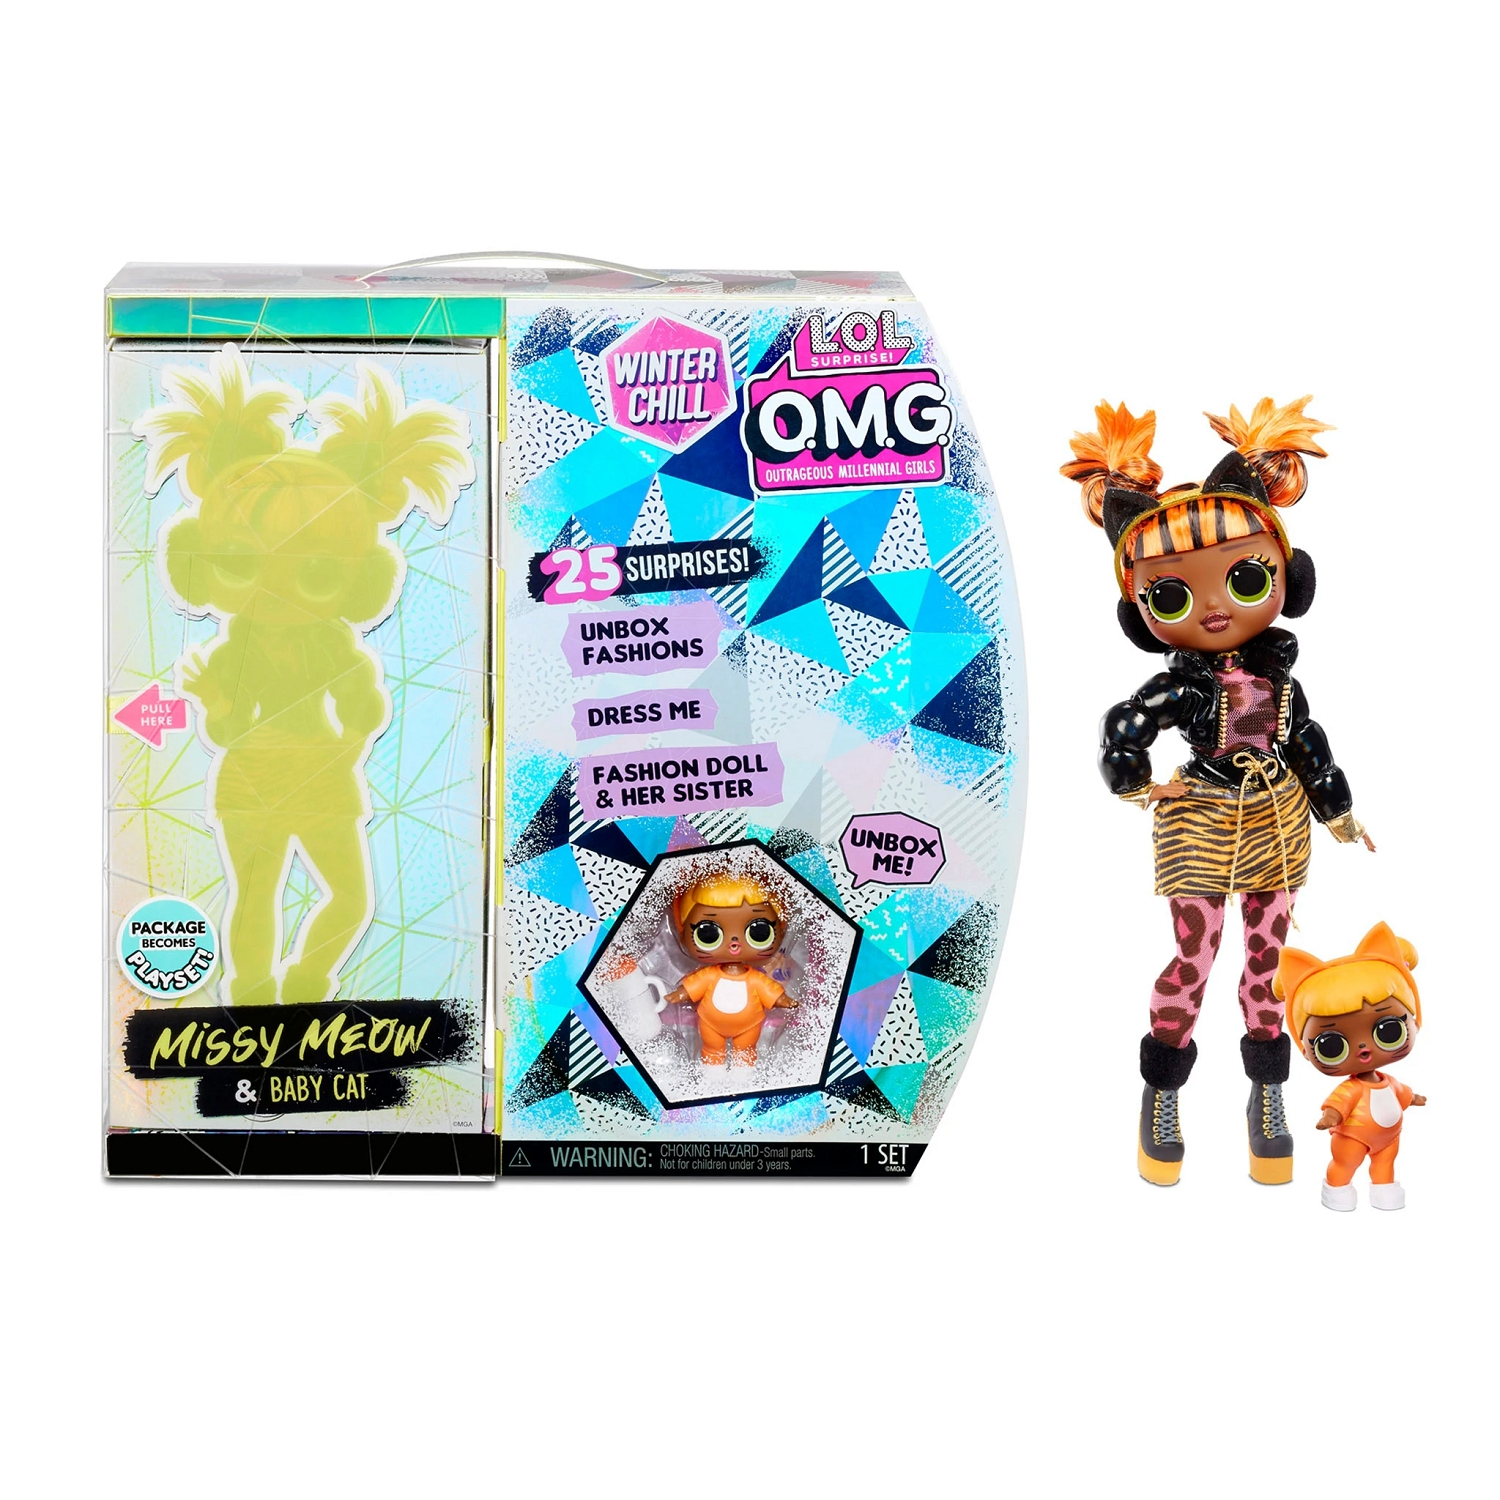 L.O.L. Surprise! O.M.G. Winter Chill - Missy Meow i Baby Cat (570271E7/570264)